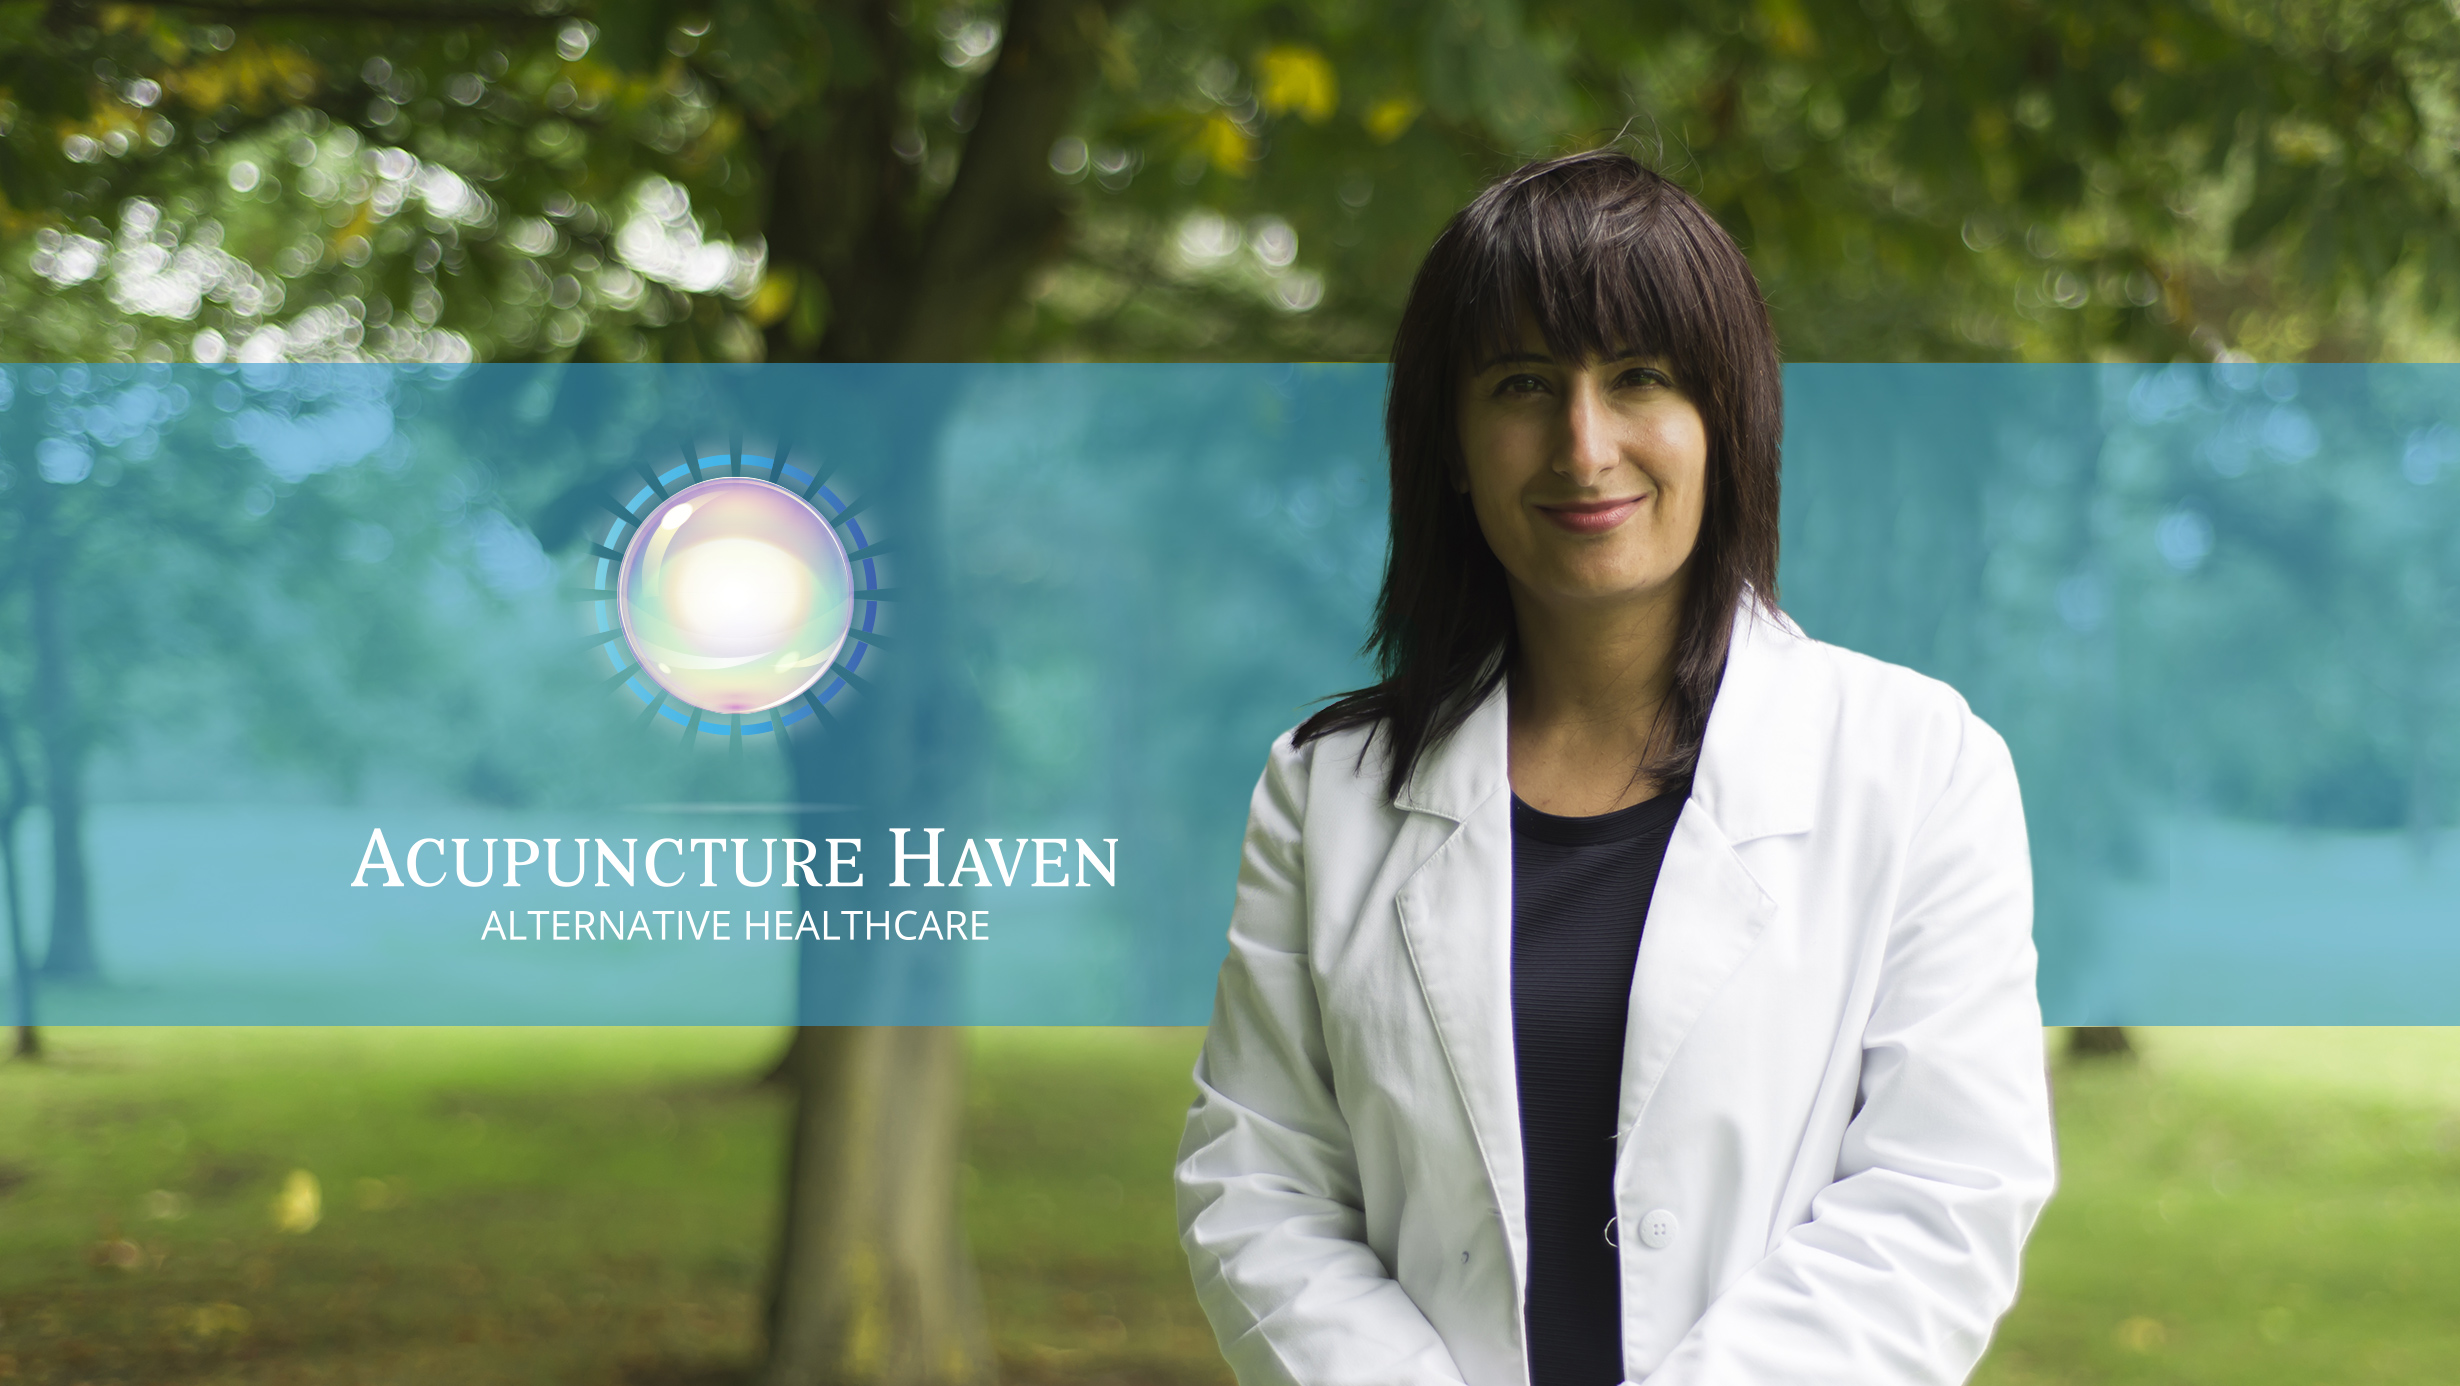 acupuncture walsall west midlands staffordshire uk acupuncture haven about me